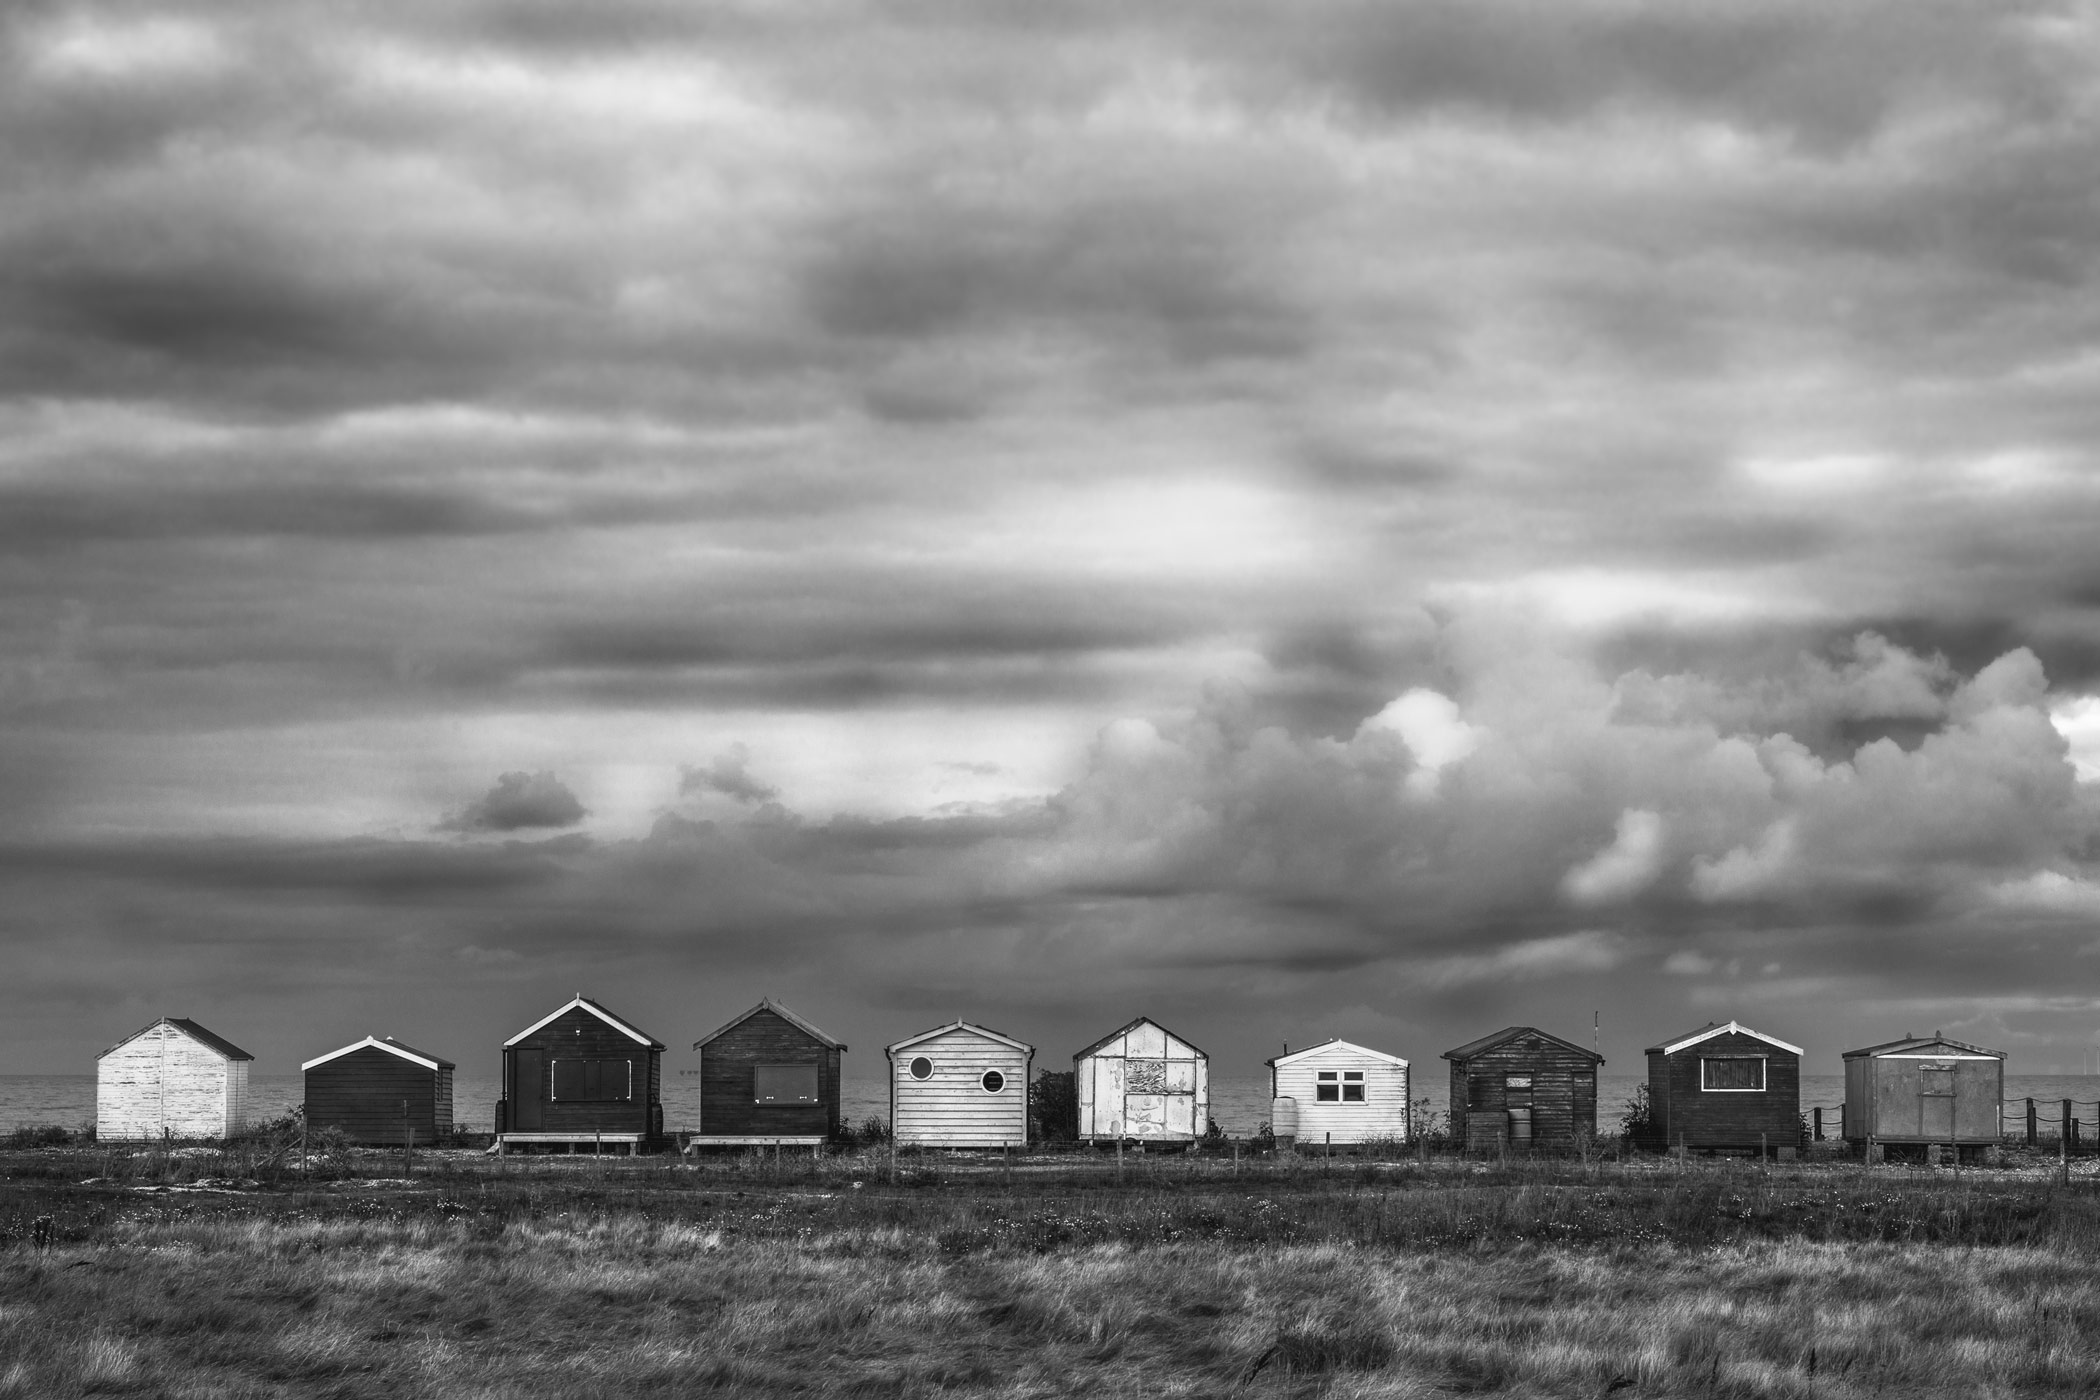 Beach-Huts-at-Seasalter-v2-WEB.jpg